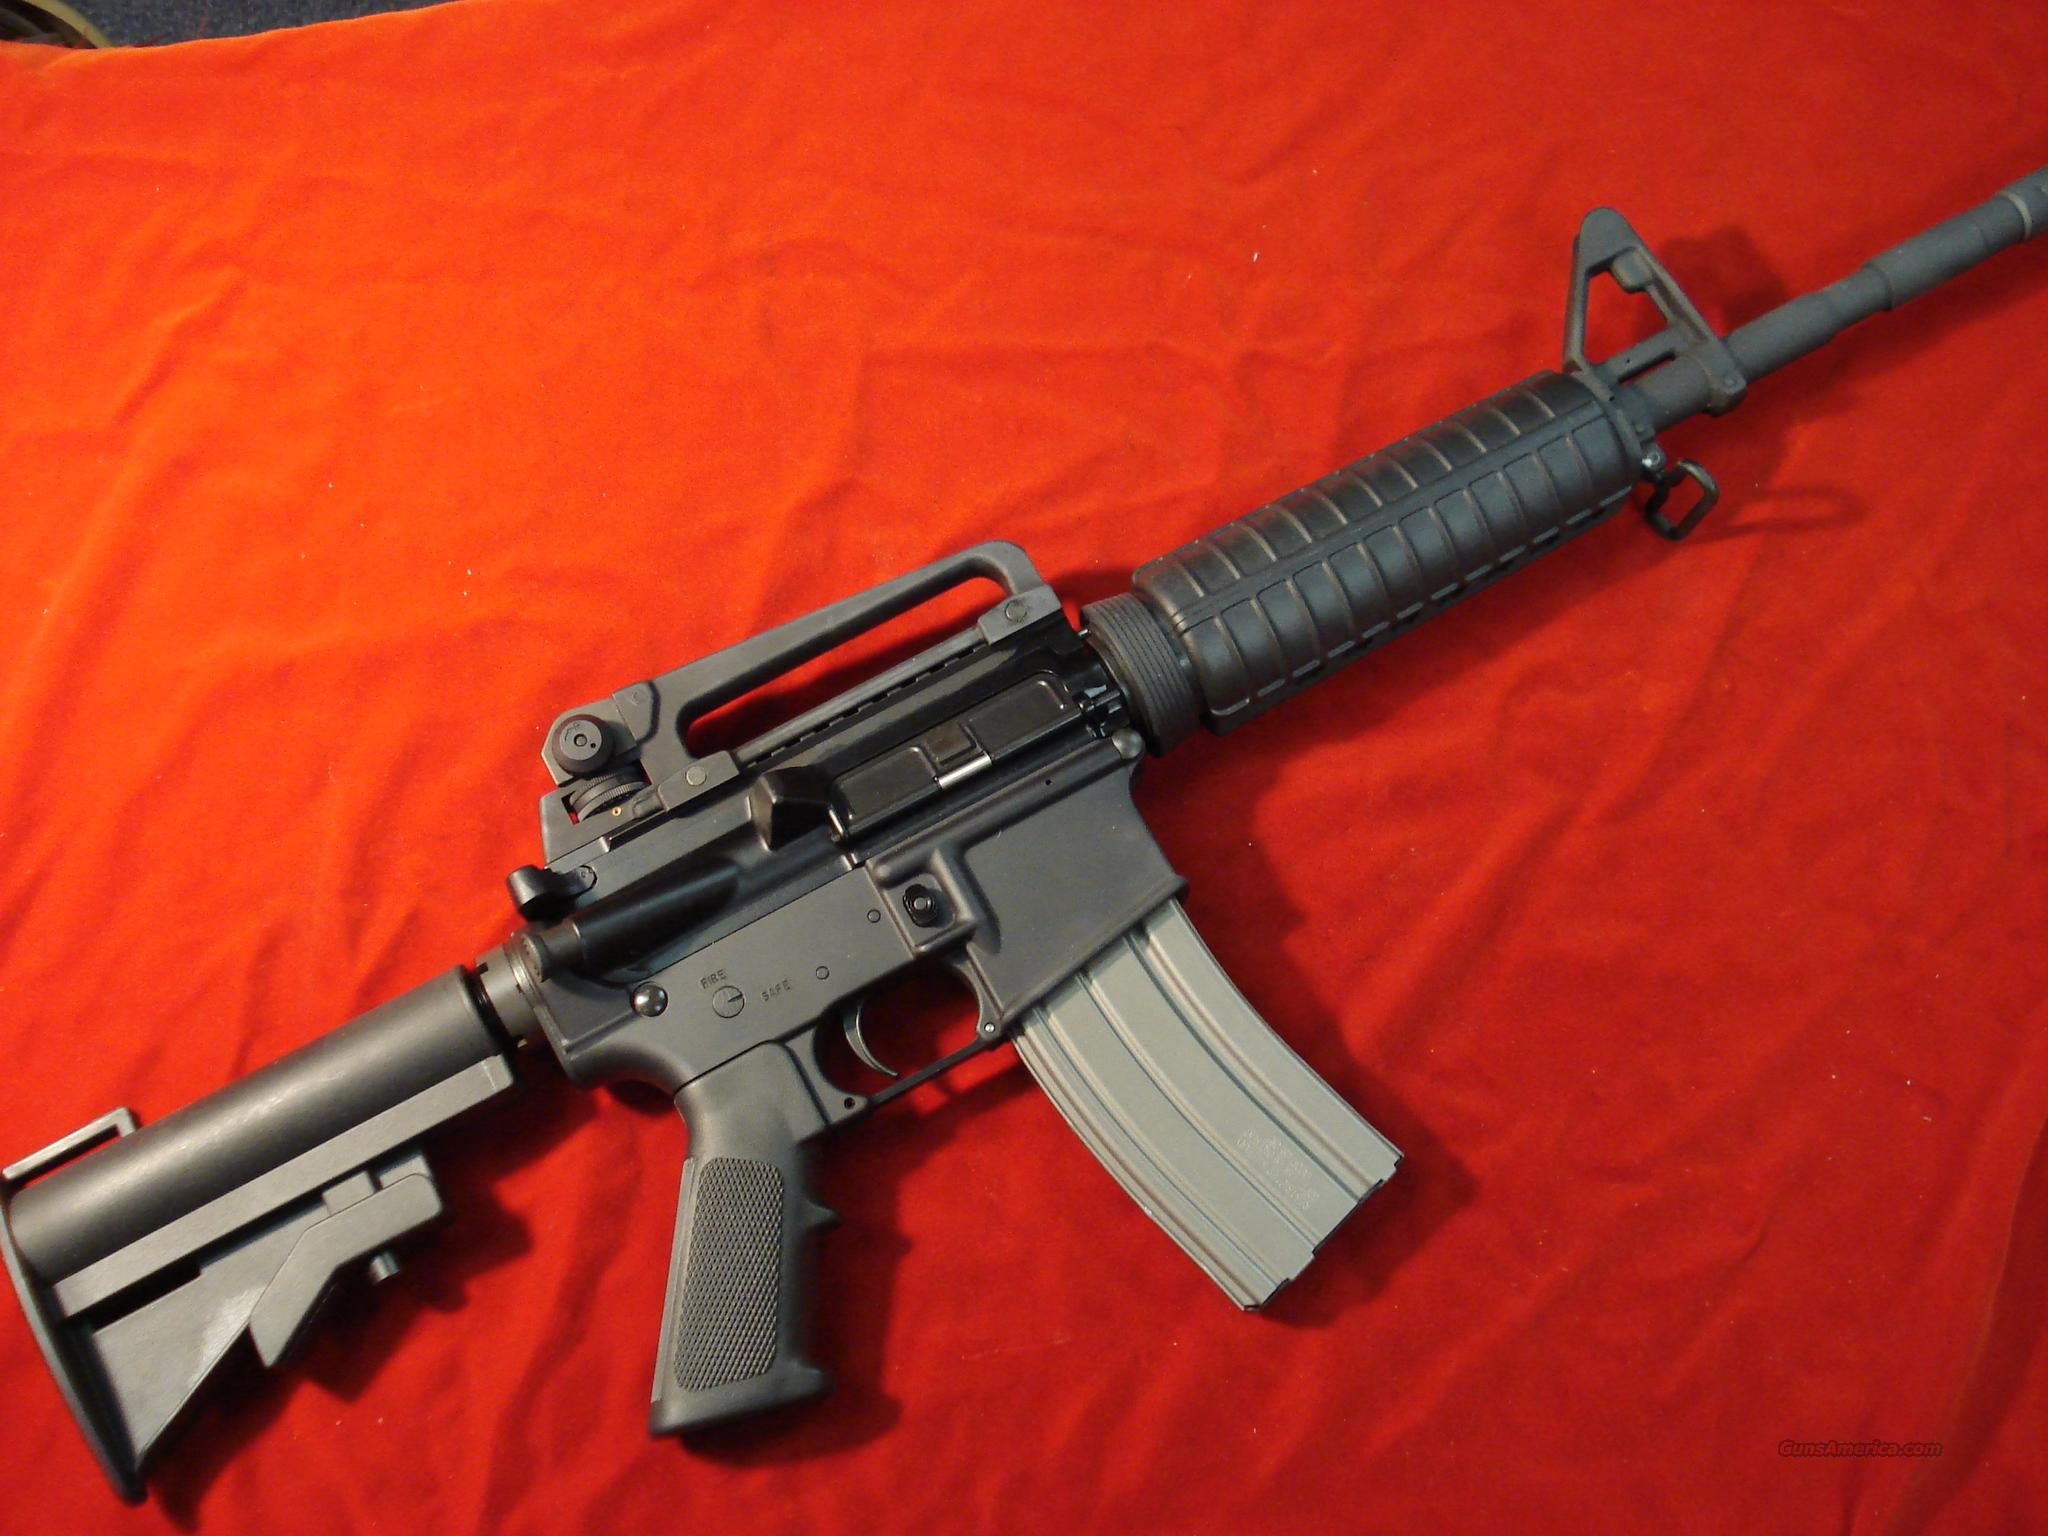 BUSHMASTER M4 A3 CARBINE WITH MINI Y COMP MUZZLE BREAK  Guns > Rifles > Bushmaster Rifles > Complete Rifles